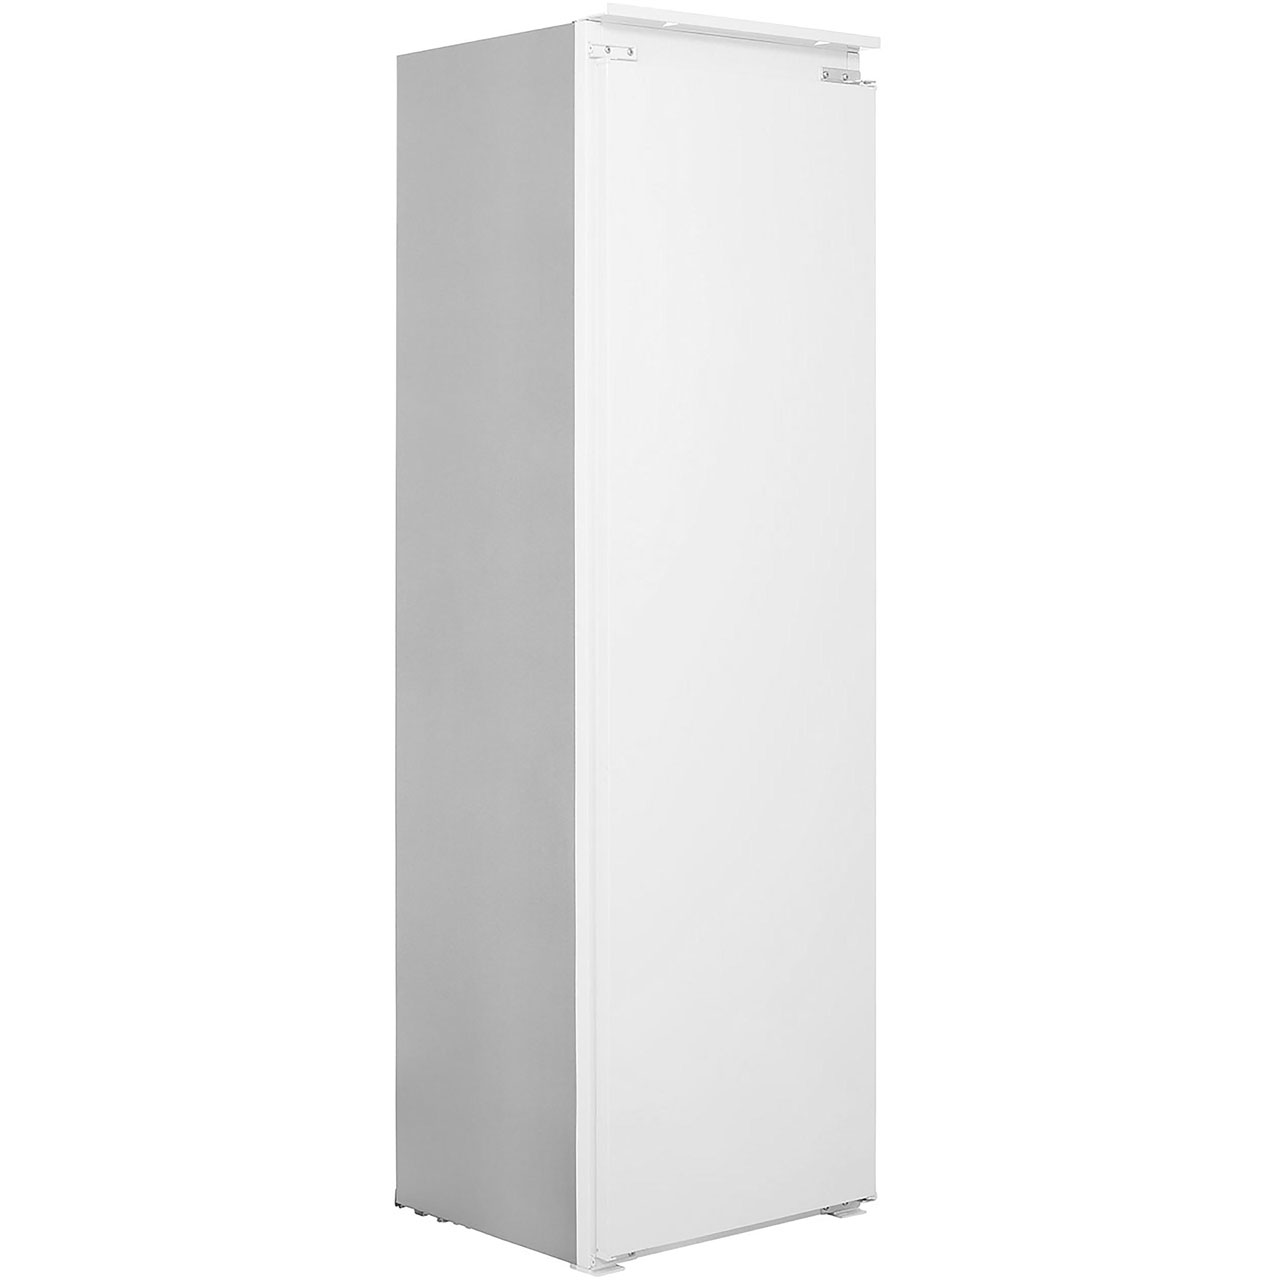 Hotpoint Day 1 HSZ1801AA.1 Integrated Upright Fridge review